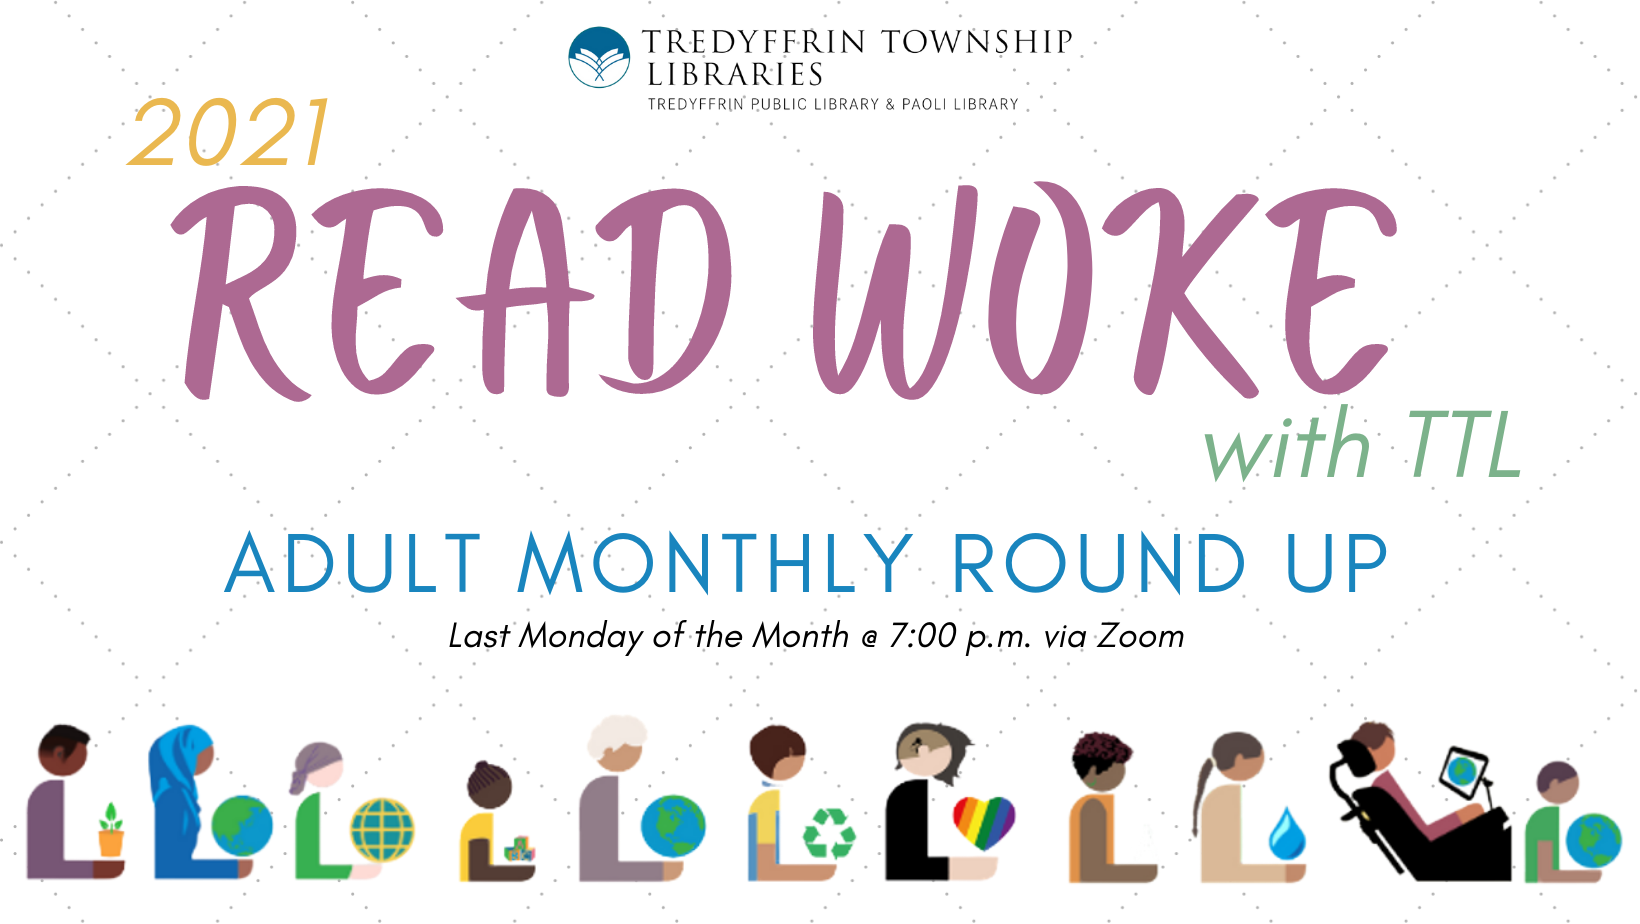 Read Woke with TTL Adult Monthly Round Up